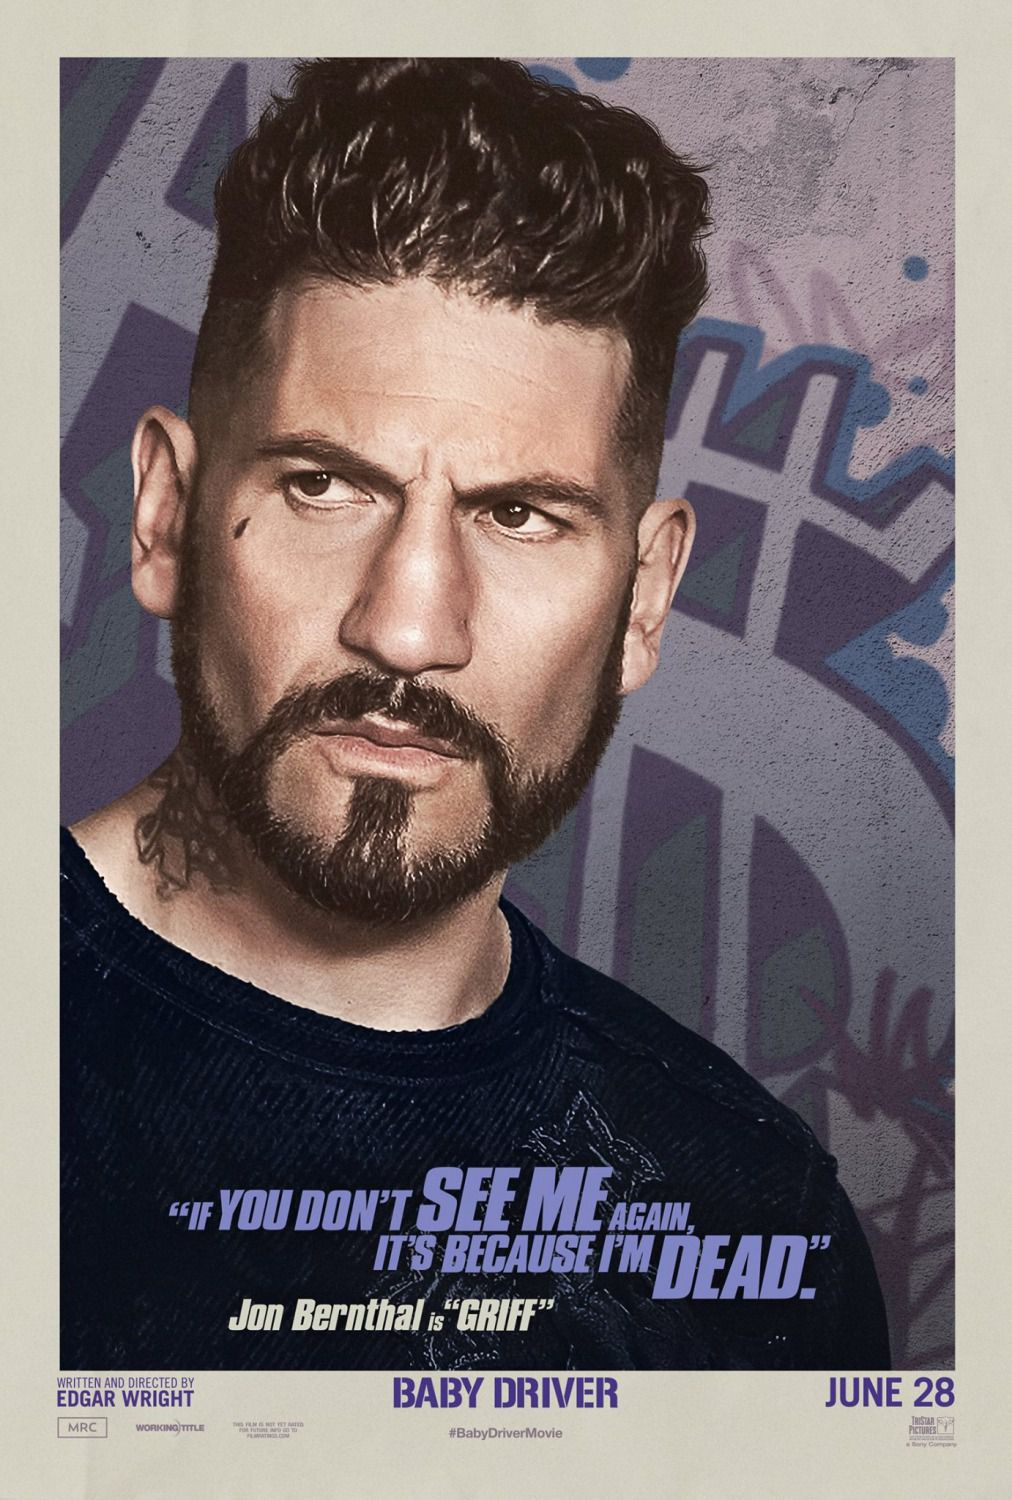 Baby Driver - Jon Bernthal is Griff